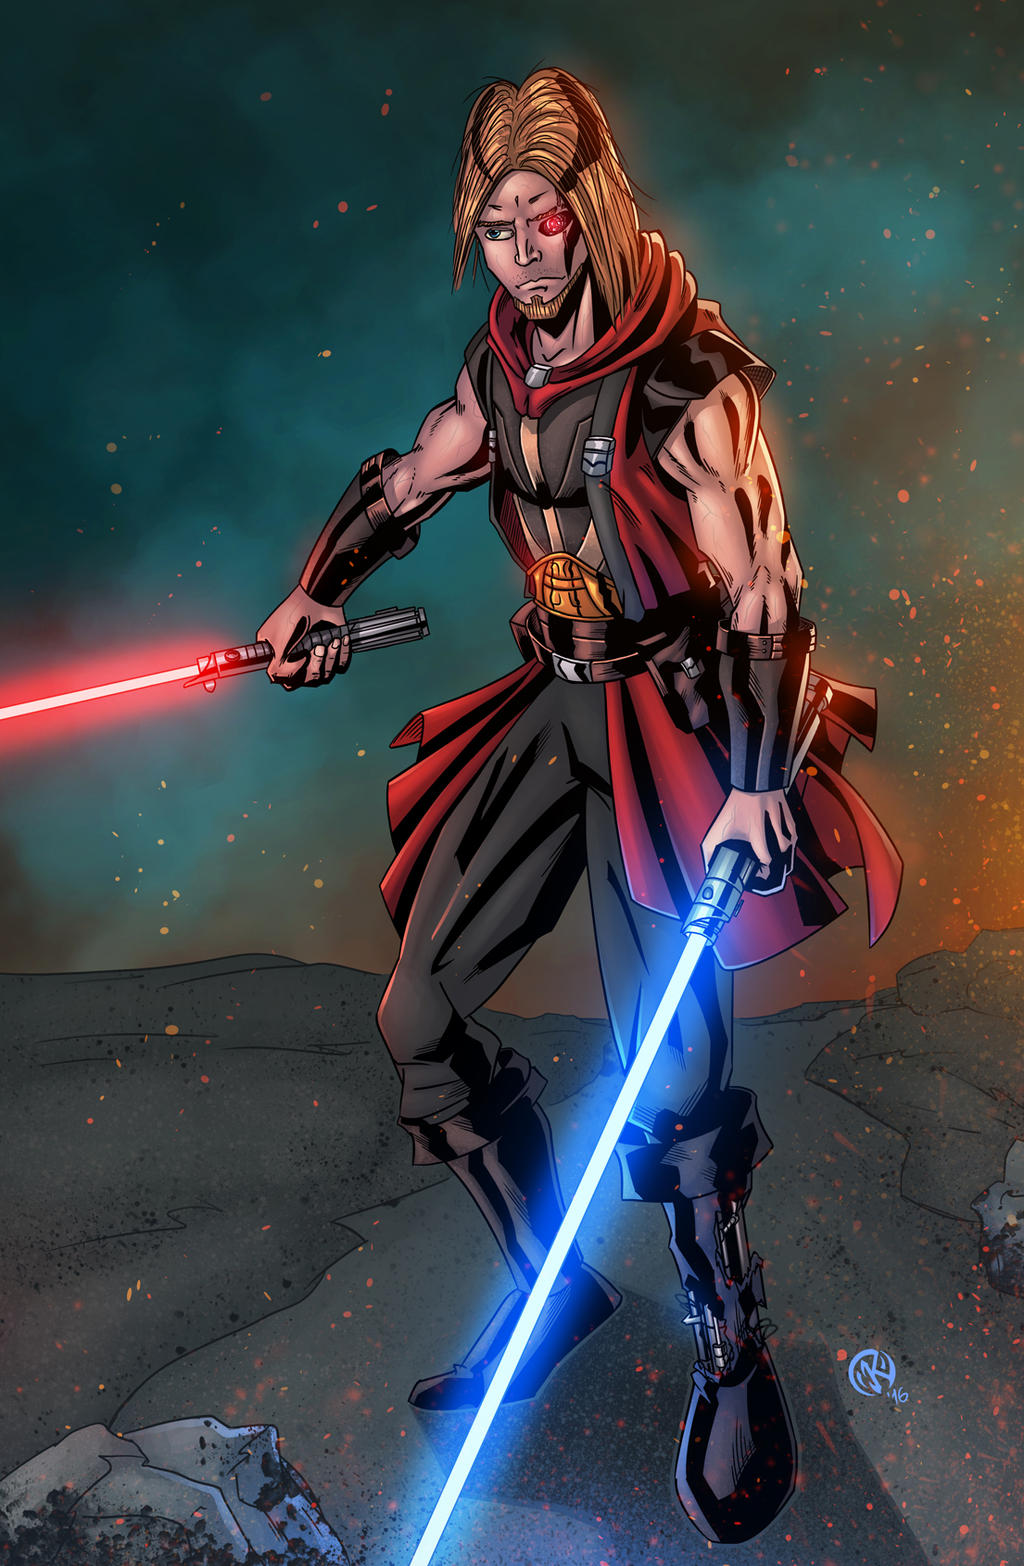 Lord S - Star Wars OC commission by ZethKeeper